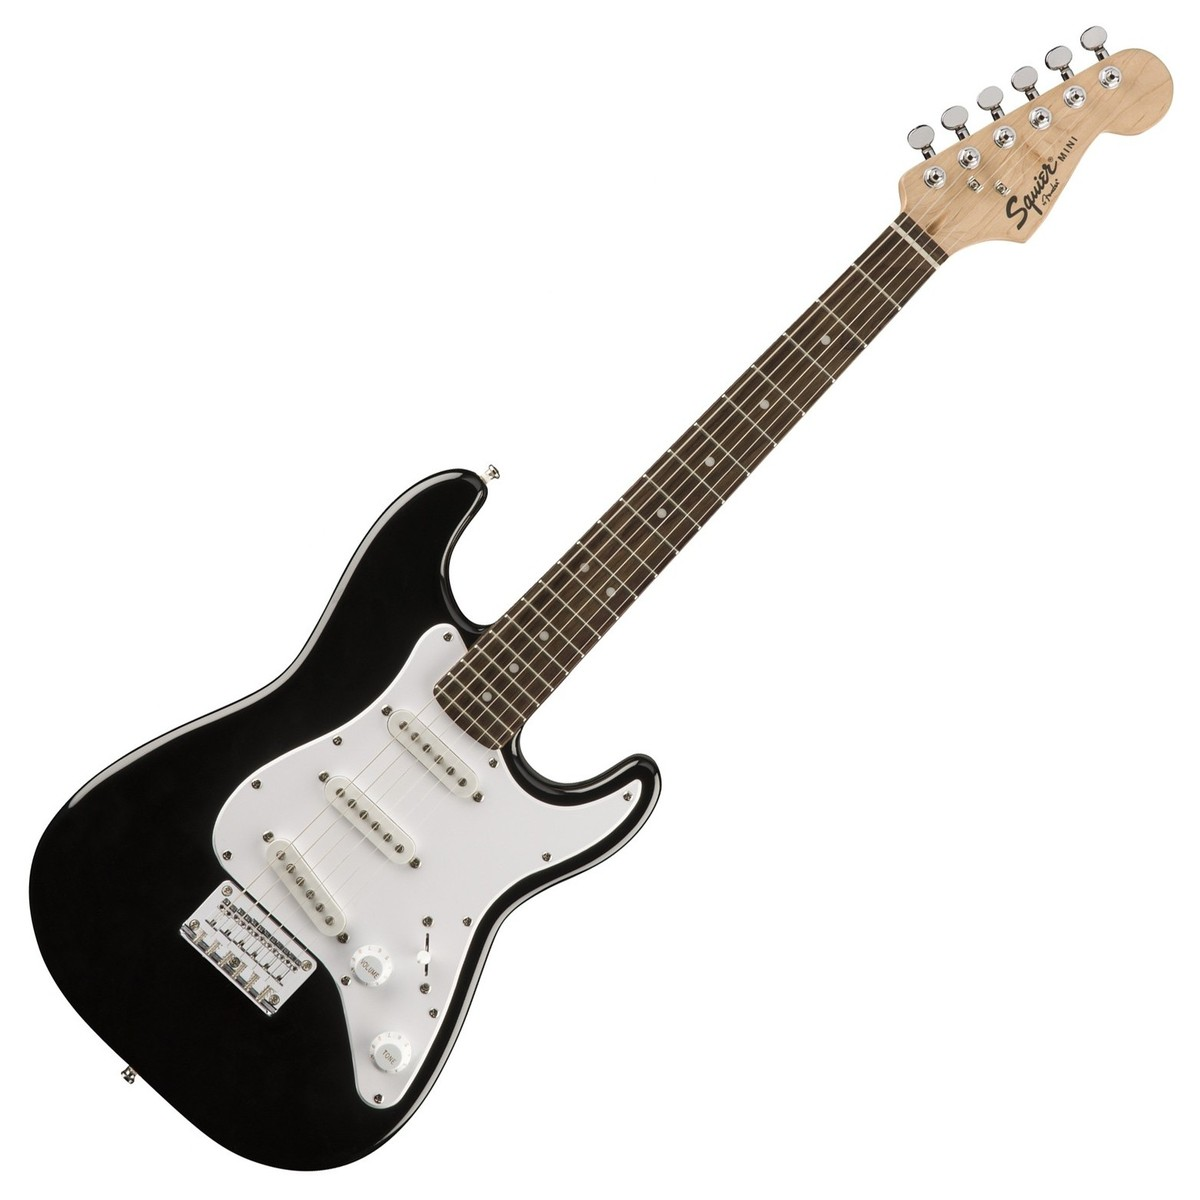 squier by fender mini stratocaster 3 4 size electric guitar black at